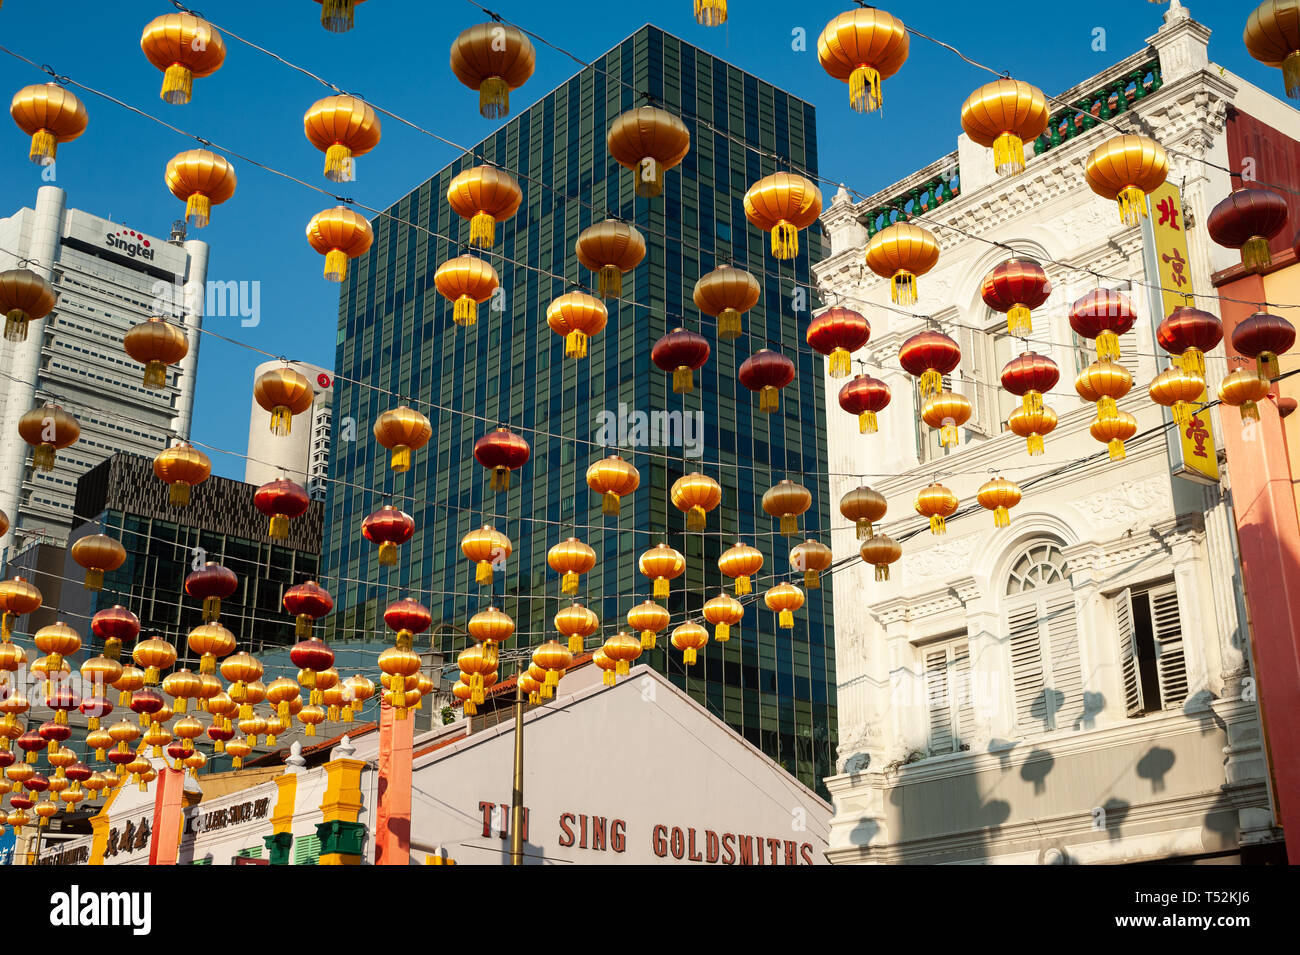 15.03.2019, Singapore, Republic of Singapore, Asia - Annual street decoration with lanterns along South Bridge Road for the Chinese Lunar New Year. Stock Photo